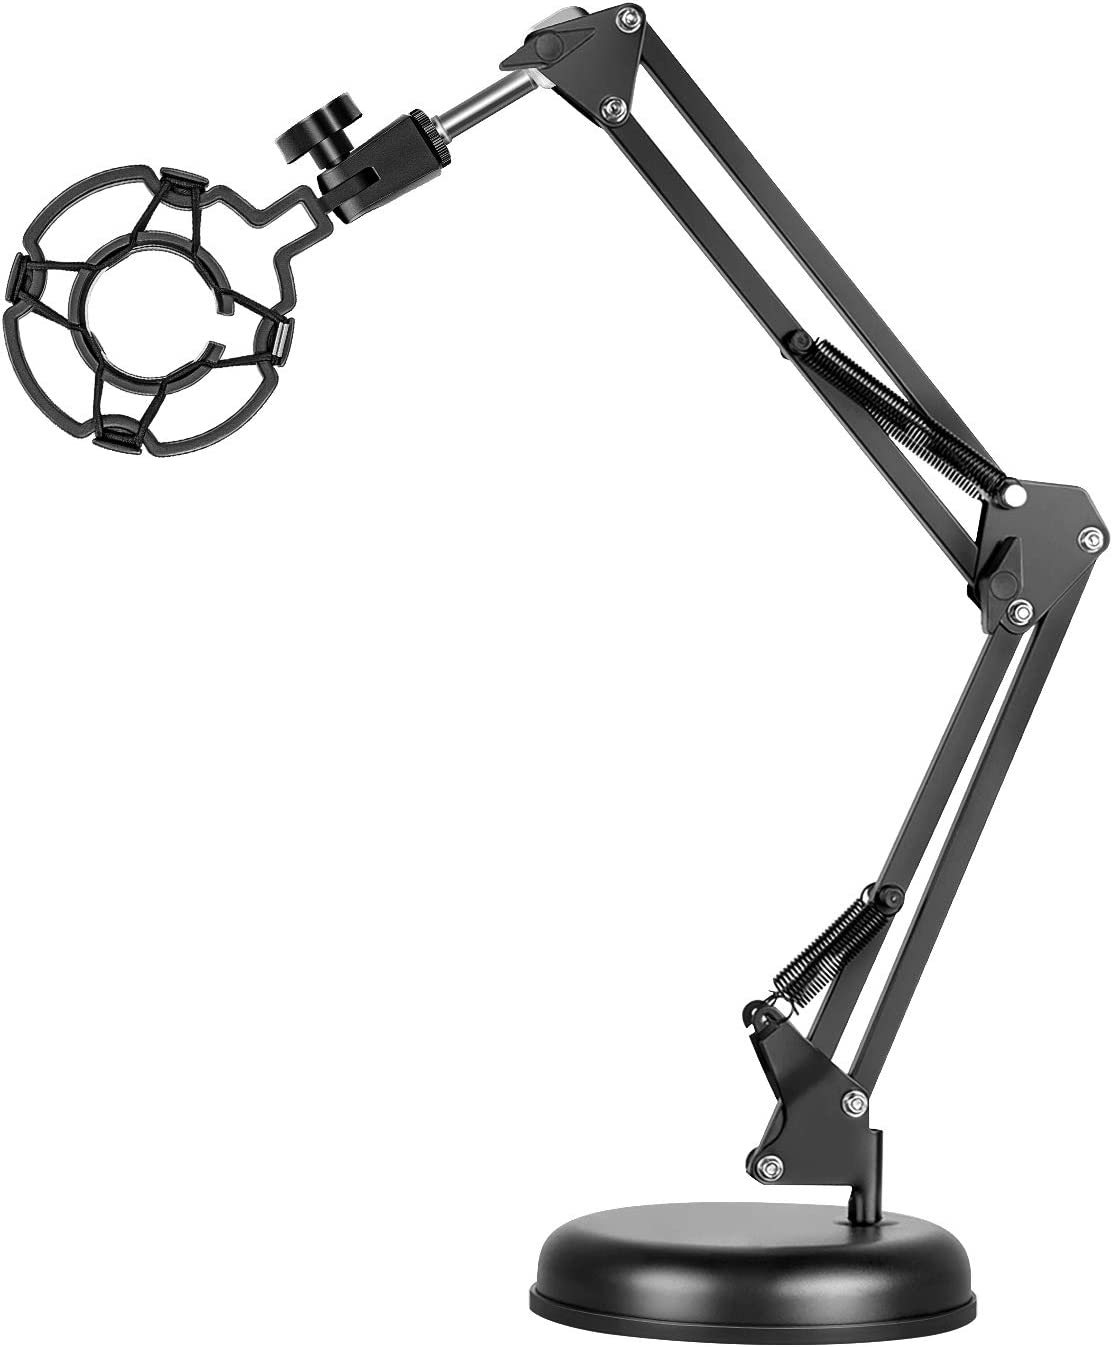 Neewer Desktop Microphone Stand, Adjustable Microphone Suspension Boom Scissor Arm Stand with Mic Shock Mount for Lightweight Micphone in Studio Video Room TV Station Broadcast and Home